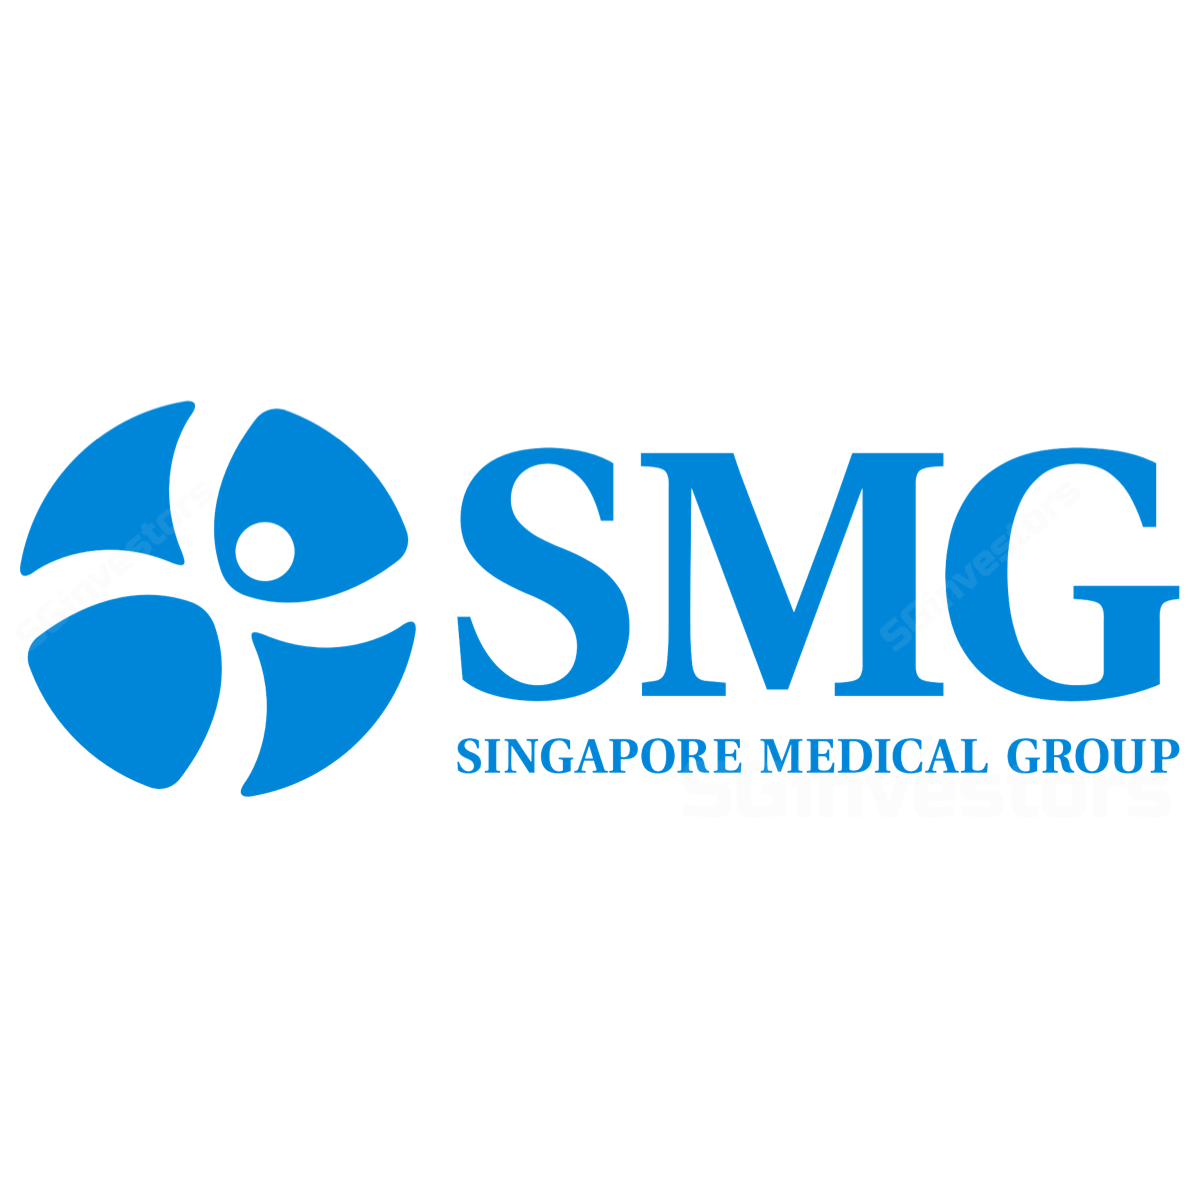 Singapore Medical Group (SMG SP) - Maybank Kim Eng 2017-04-04: Exciting growth plans